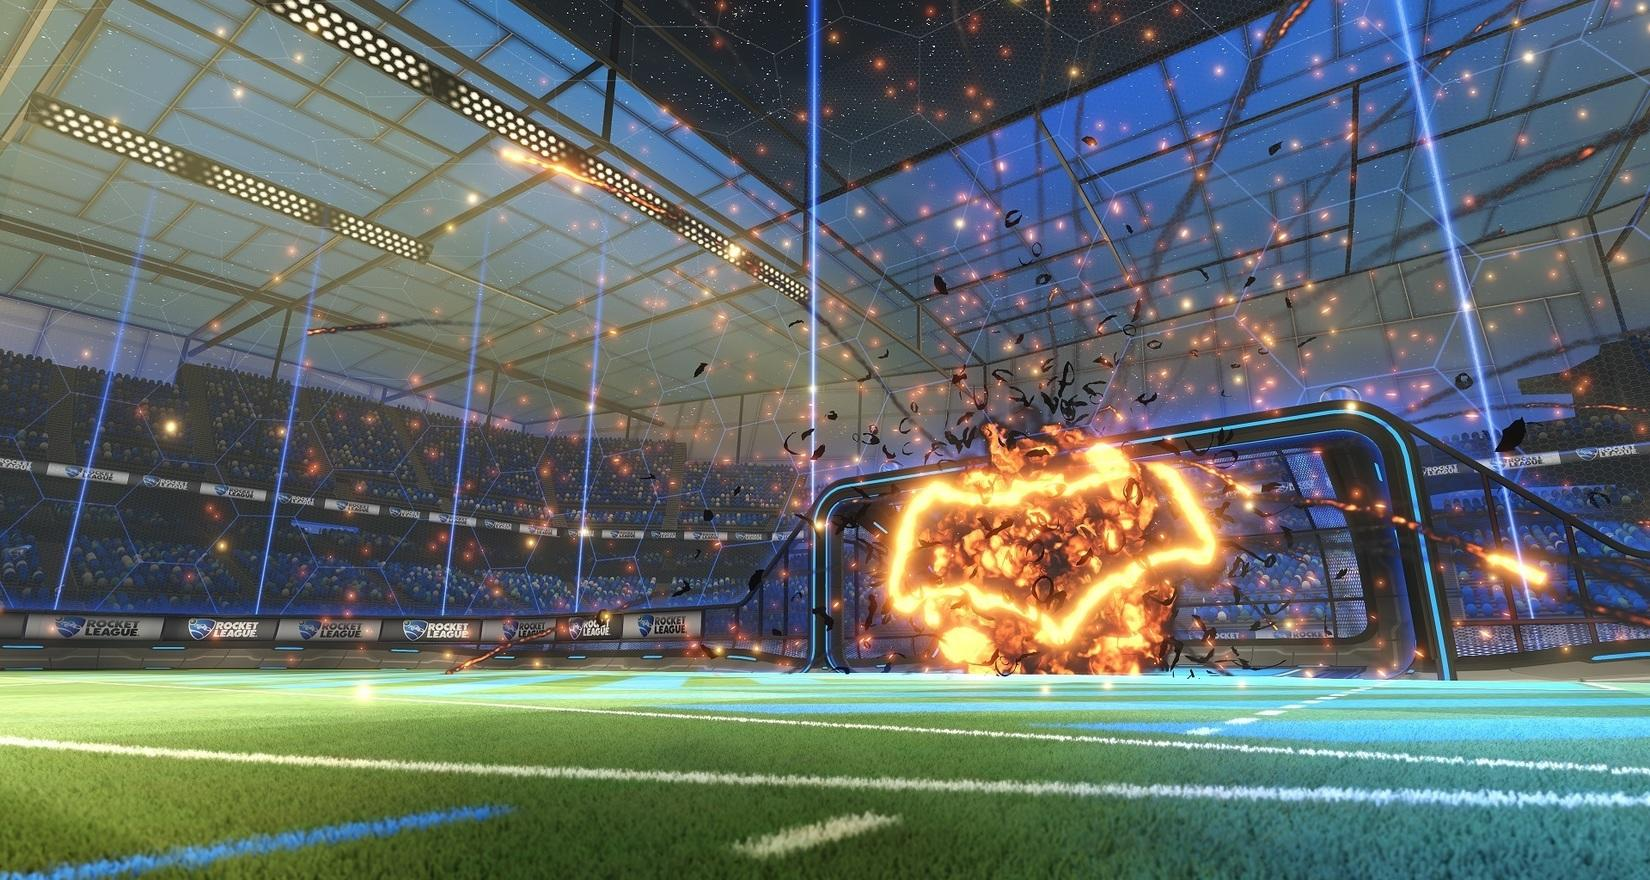 The Batmobile's New Goal Explosion Image